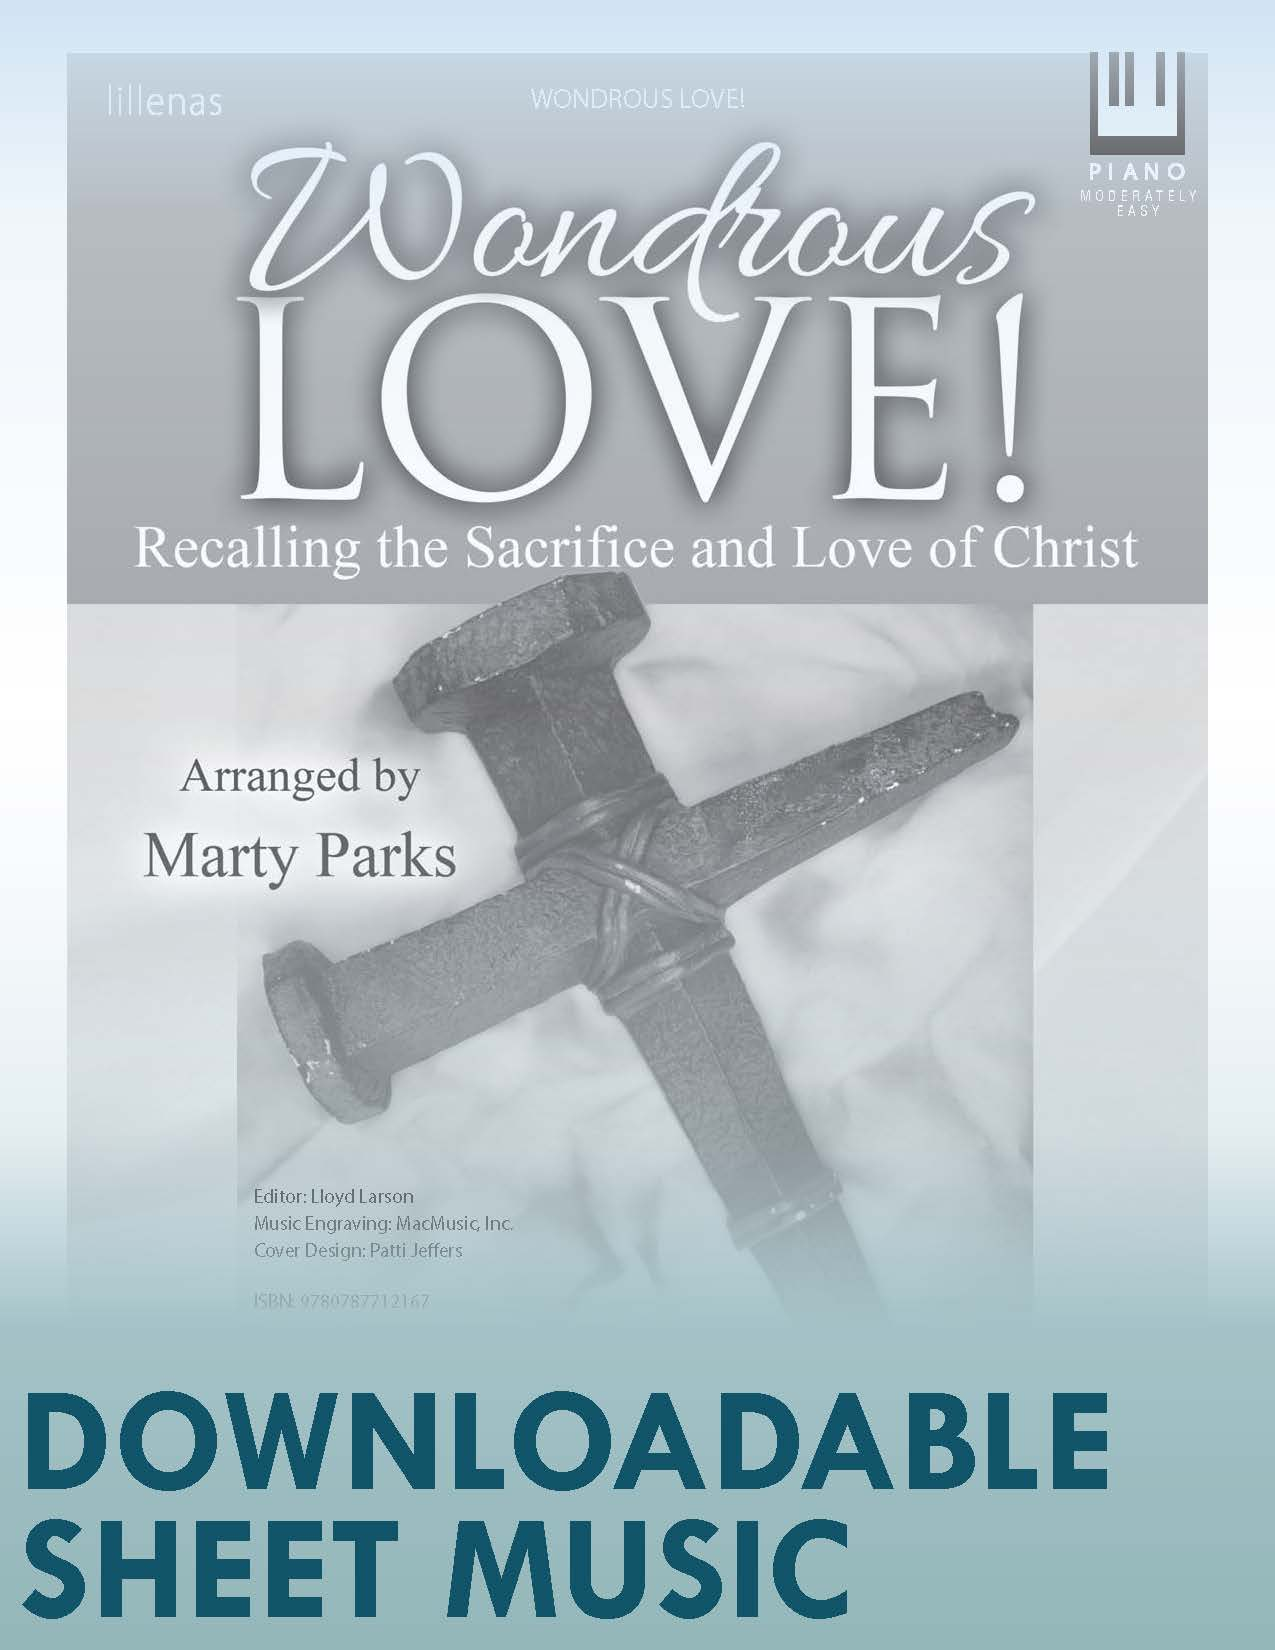 Wondrous Love! - Digital Download